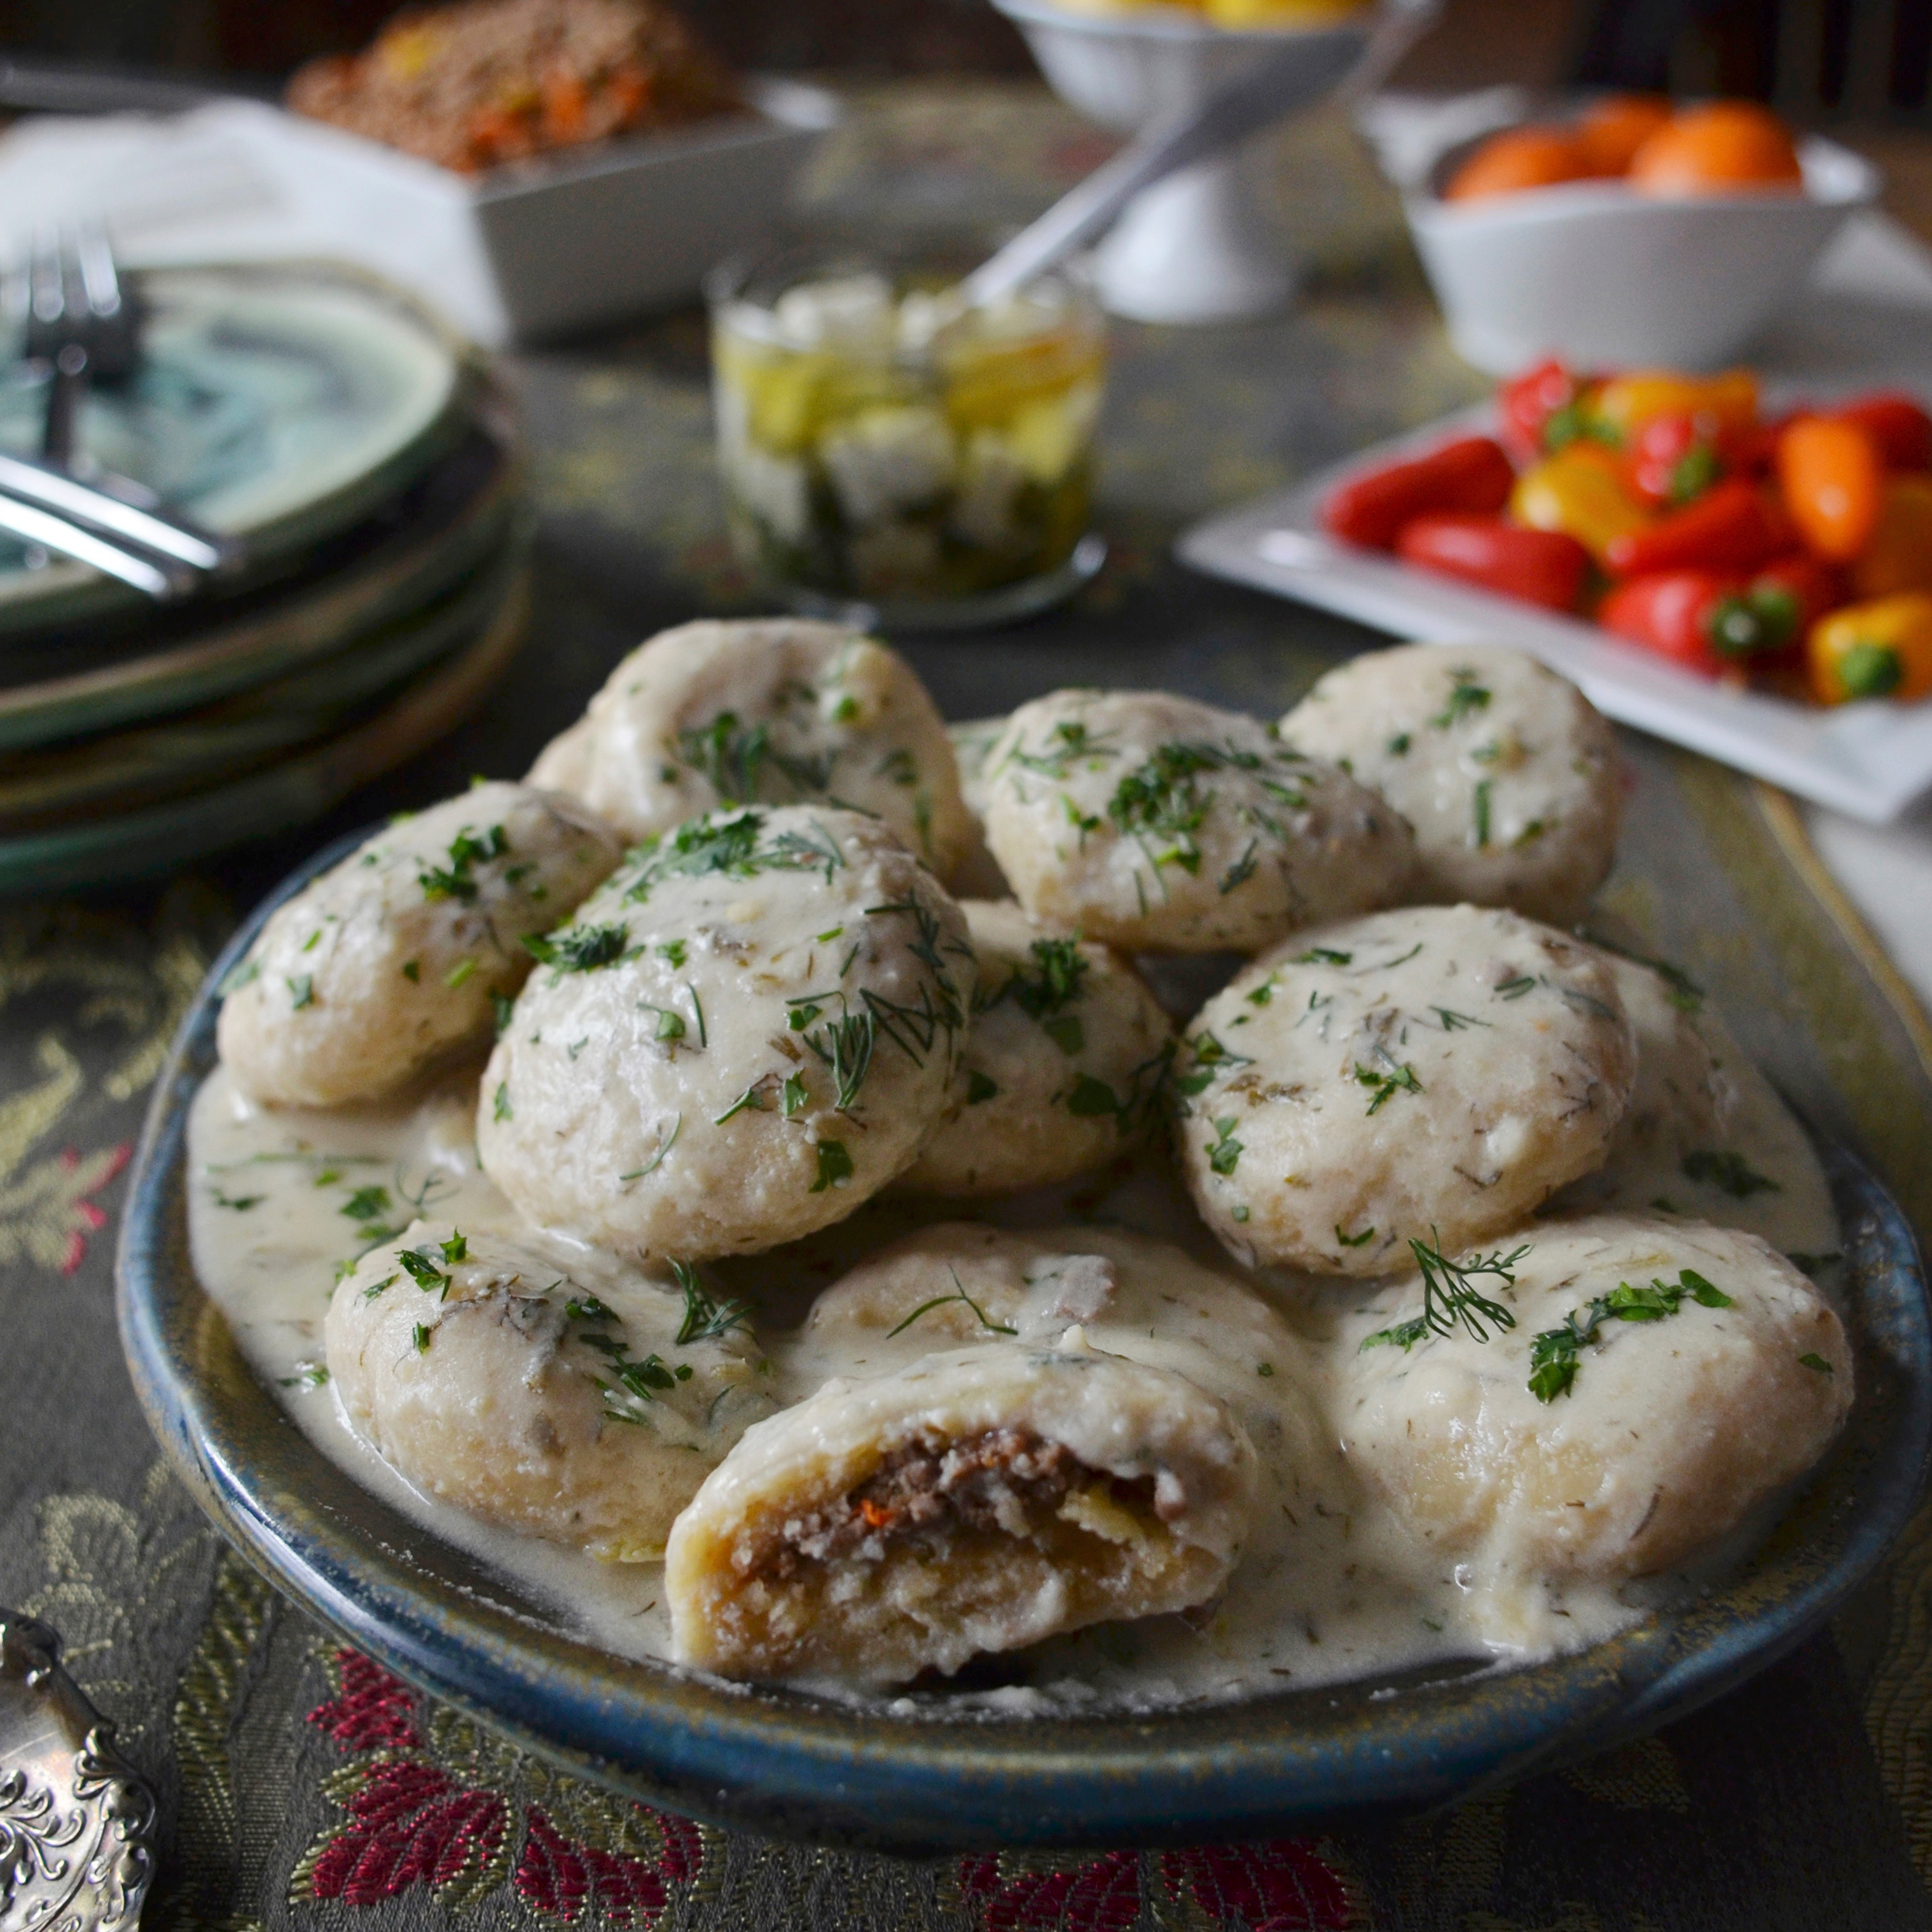 Cuisine Food In Kurdish Dumplings In Yogurt Recipe Andrew Zimmern Food